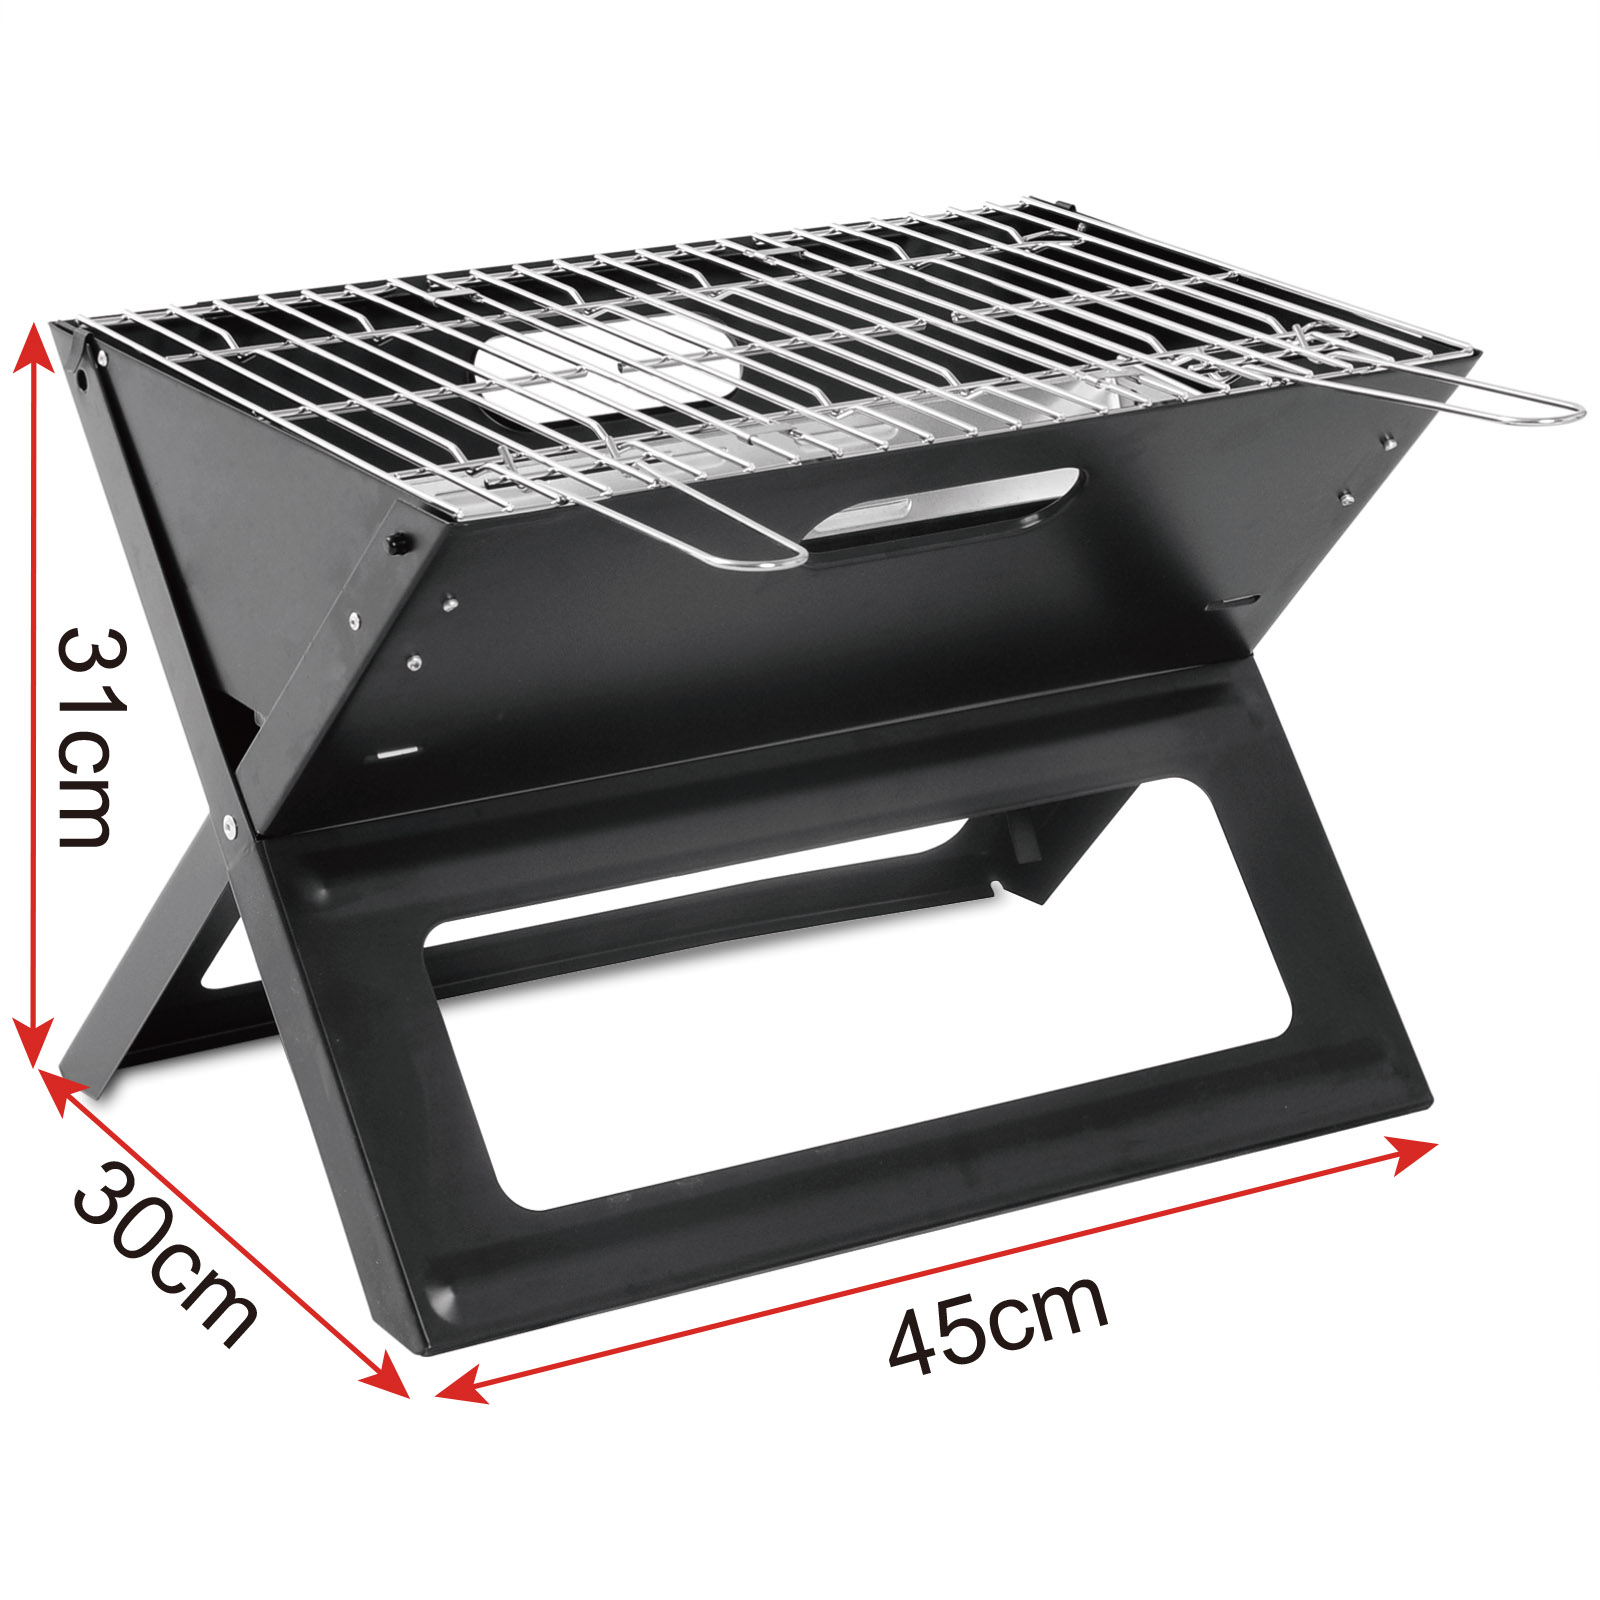 holzkohlegrill mini klappgrill bbq faltbar garten grill stahl schwarz cpz8118sz 4054908123763 ebay. Black Bedroom Furniture Sets. Home Design Ideas